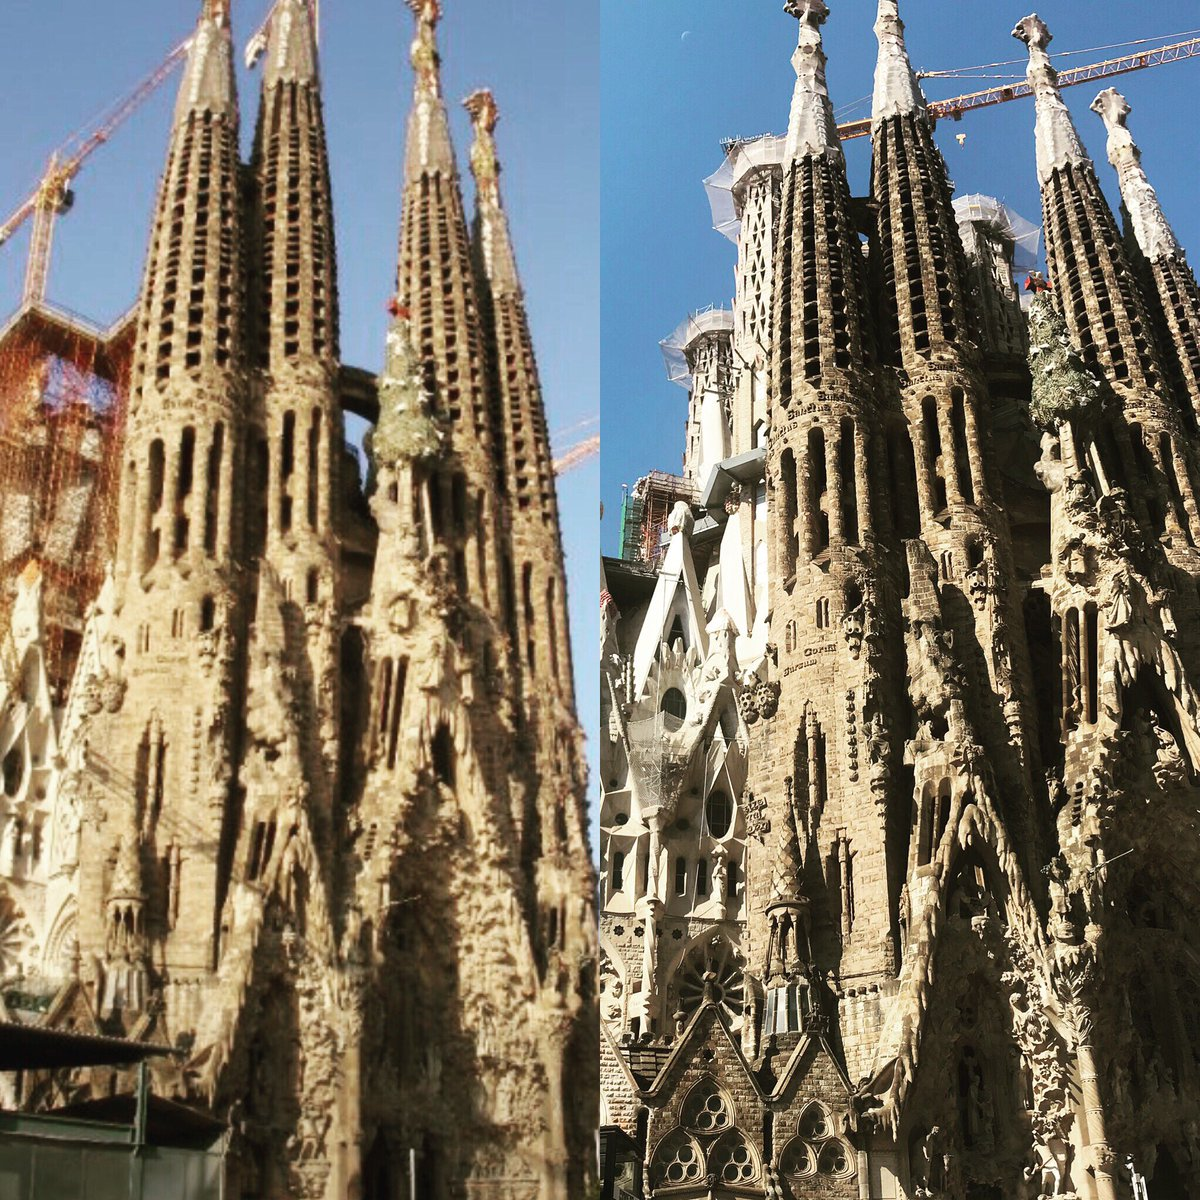 I'm in Barcelona at la sagrada familia. These photos are taken 10 years apart. 2009 to today. It's so breathtaking. Can't wait to see it finished. #lasagradafamilia #barcelona https://t.co/1GsQBh8onF